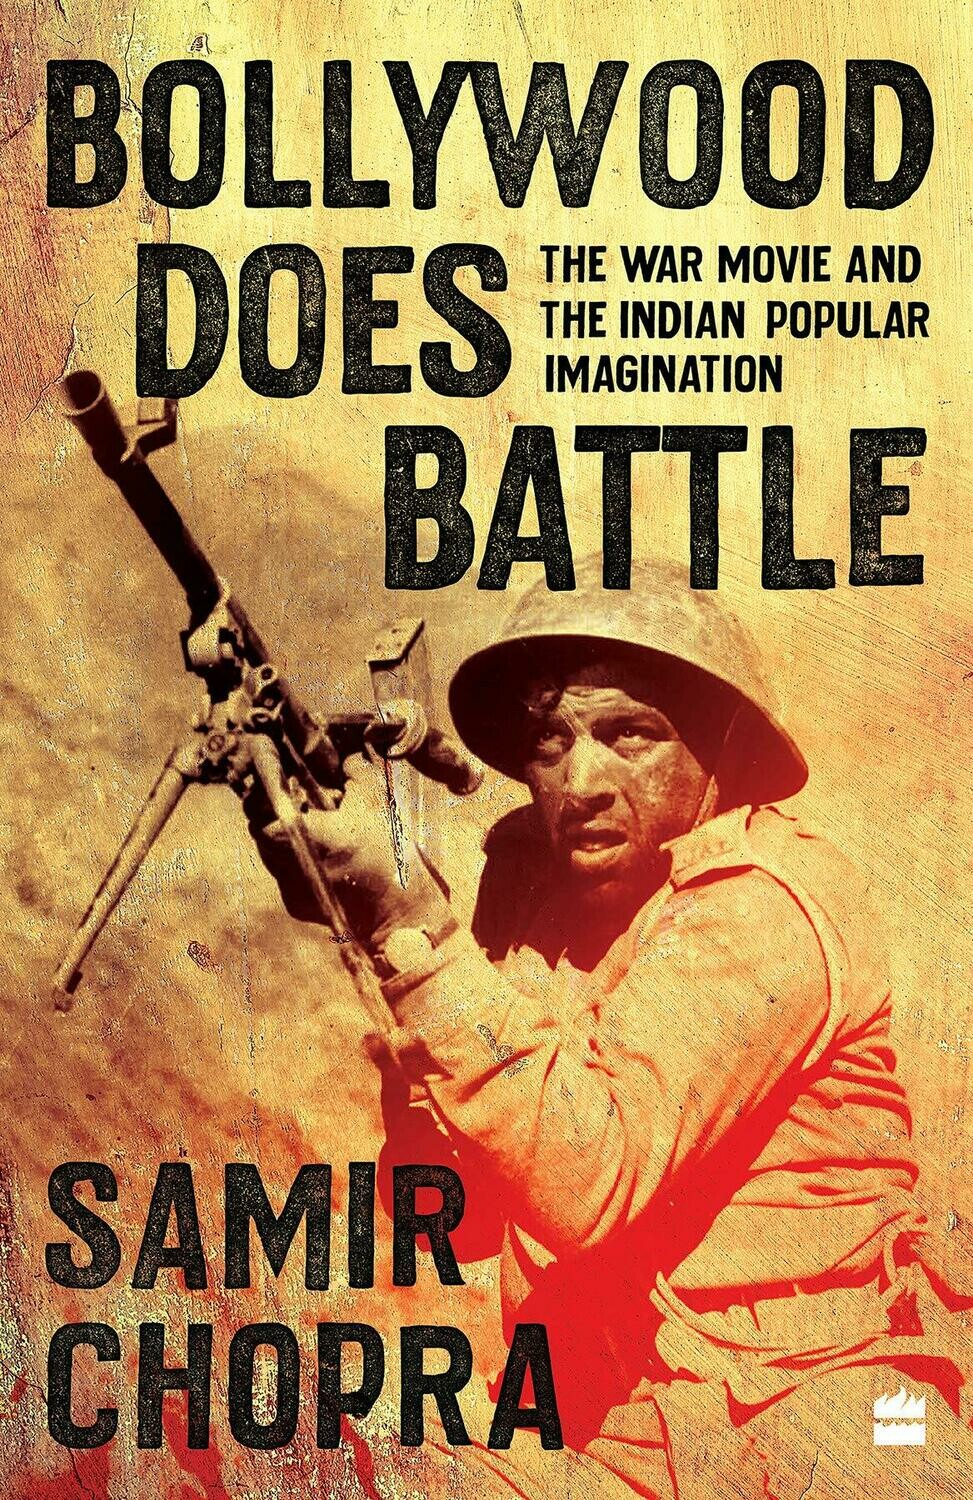 Bollywood Does Battle: The War Movie and the Indian Popular Imagination